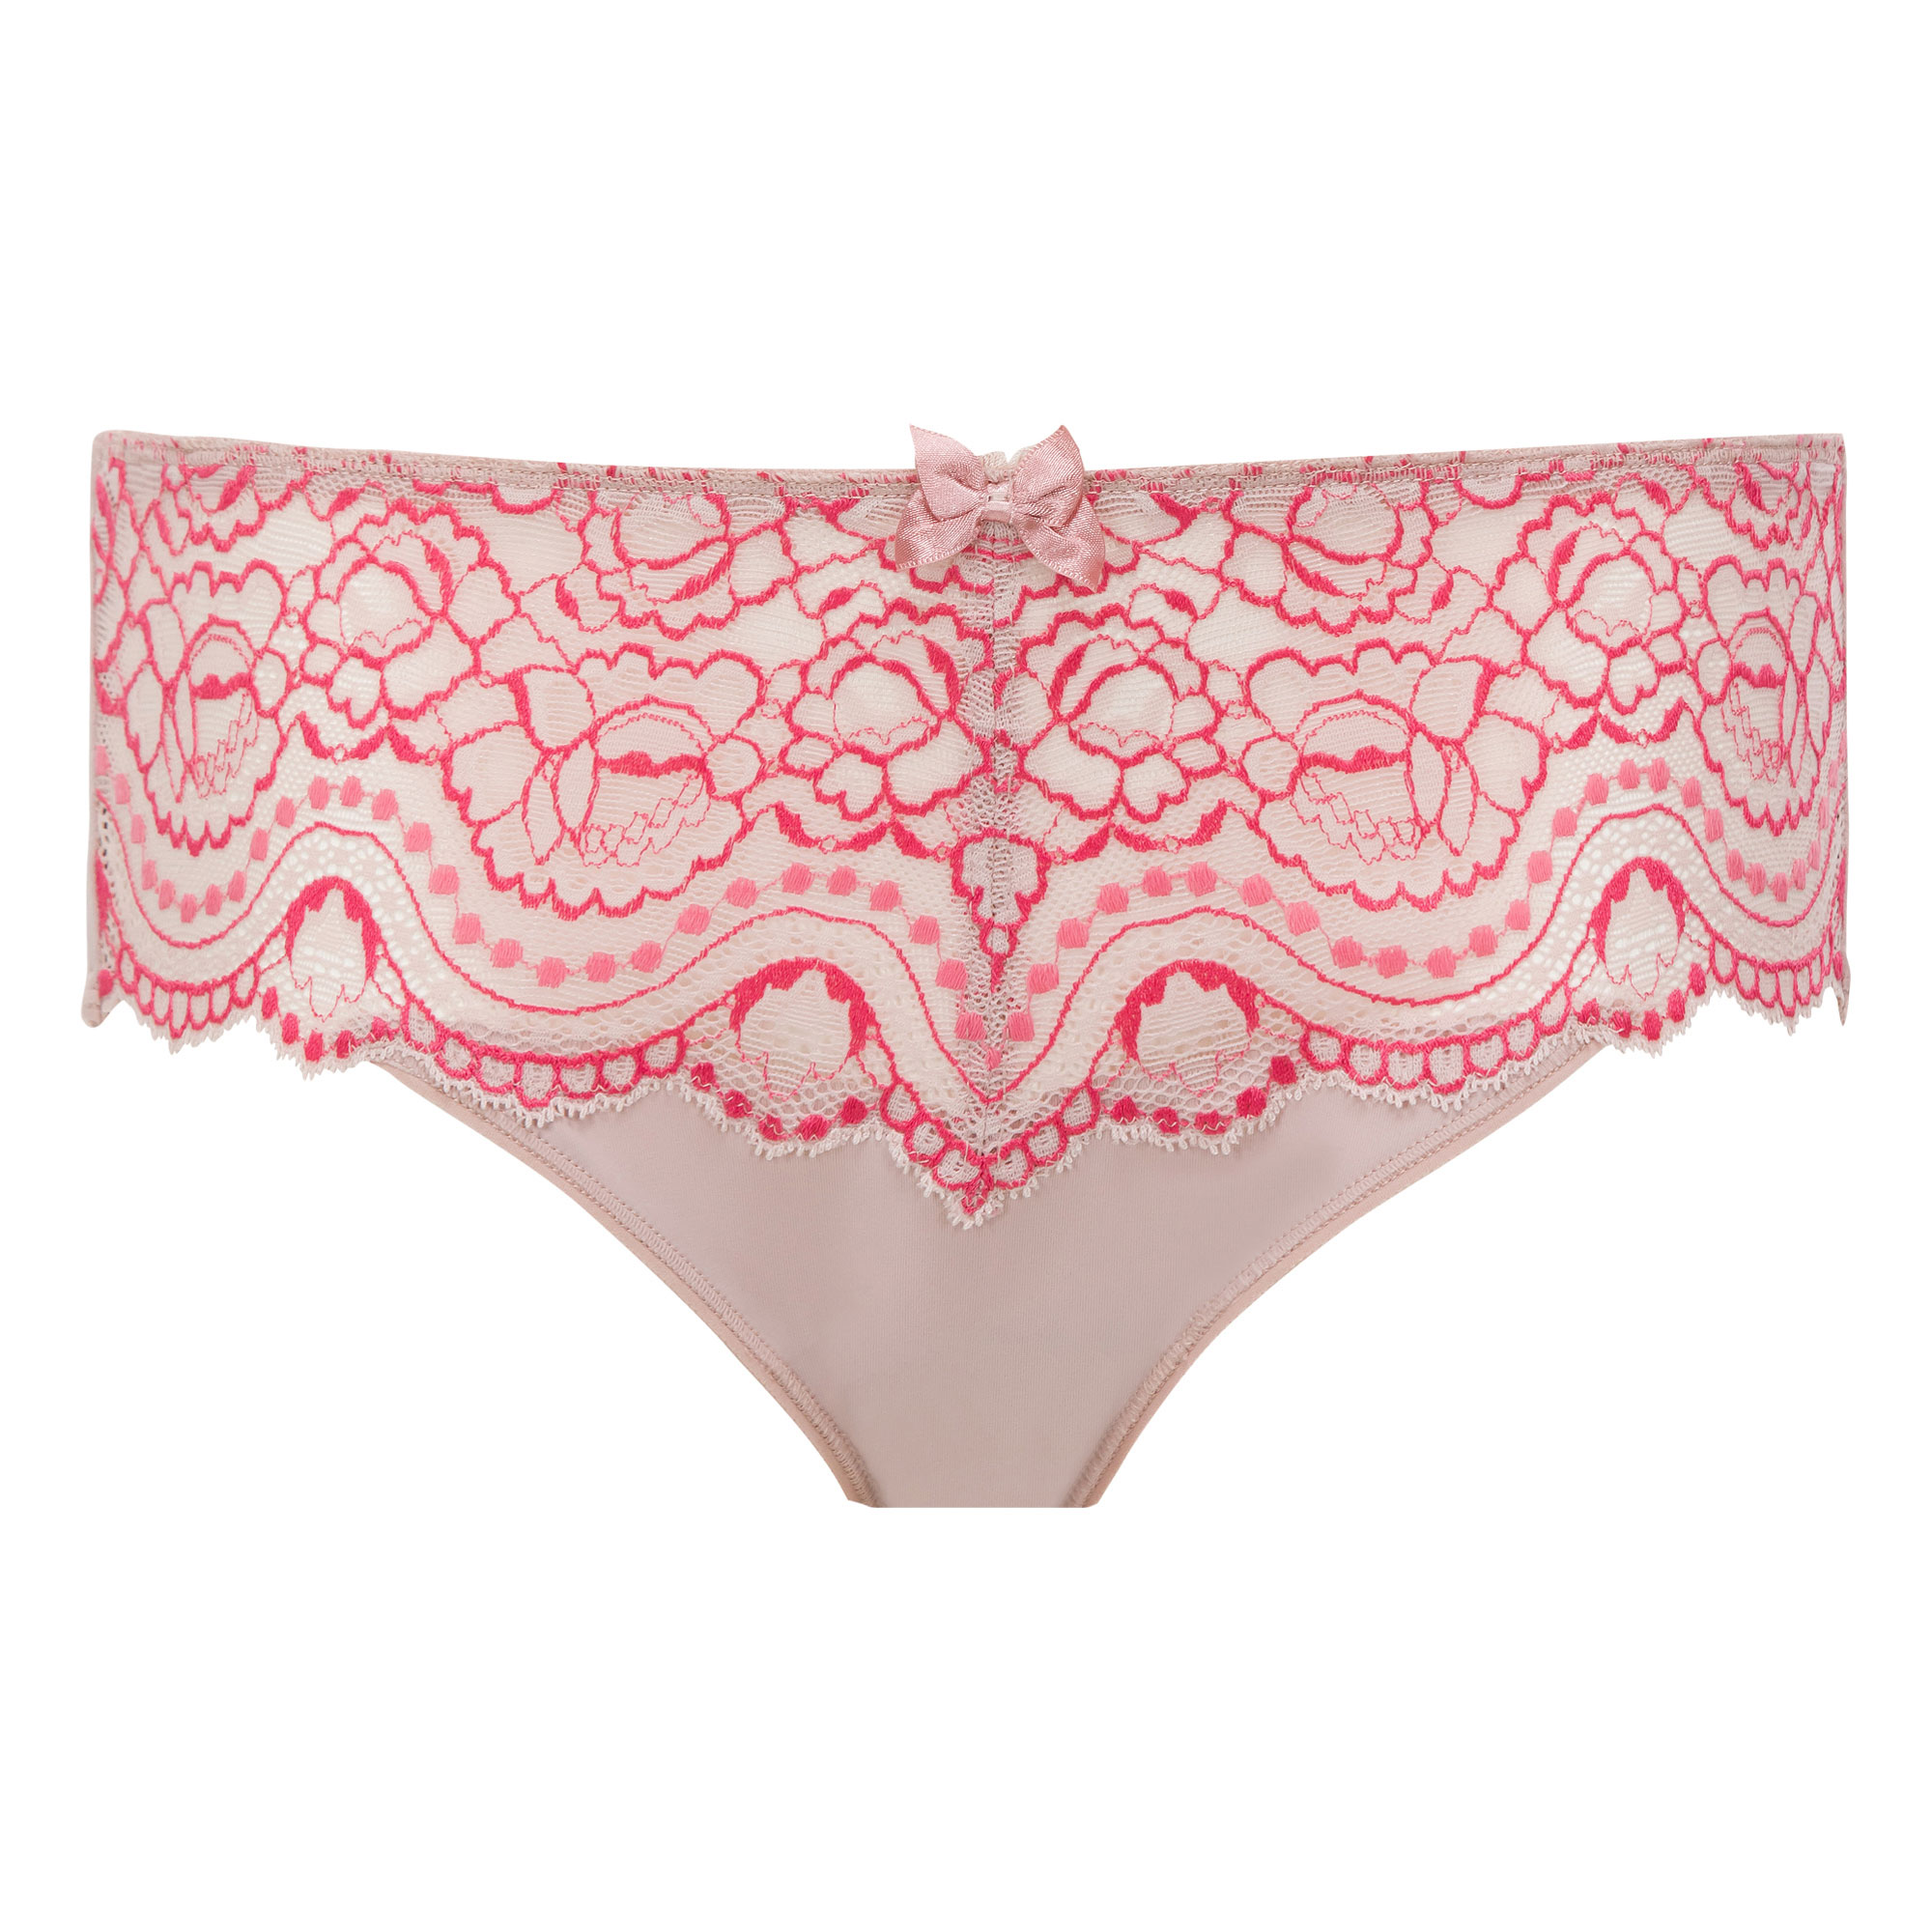 Pink and beige Midi brief - Flower Elegance-PLAYTEX